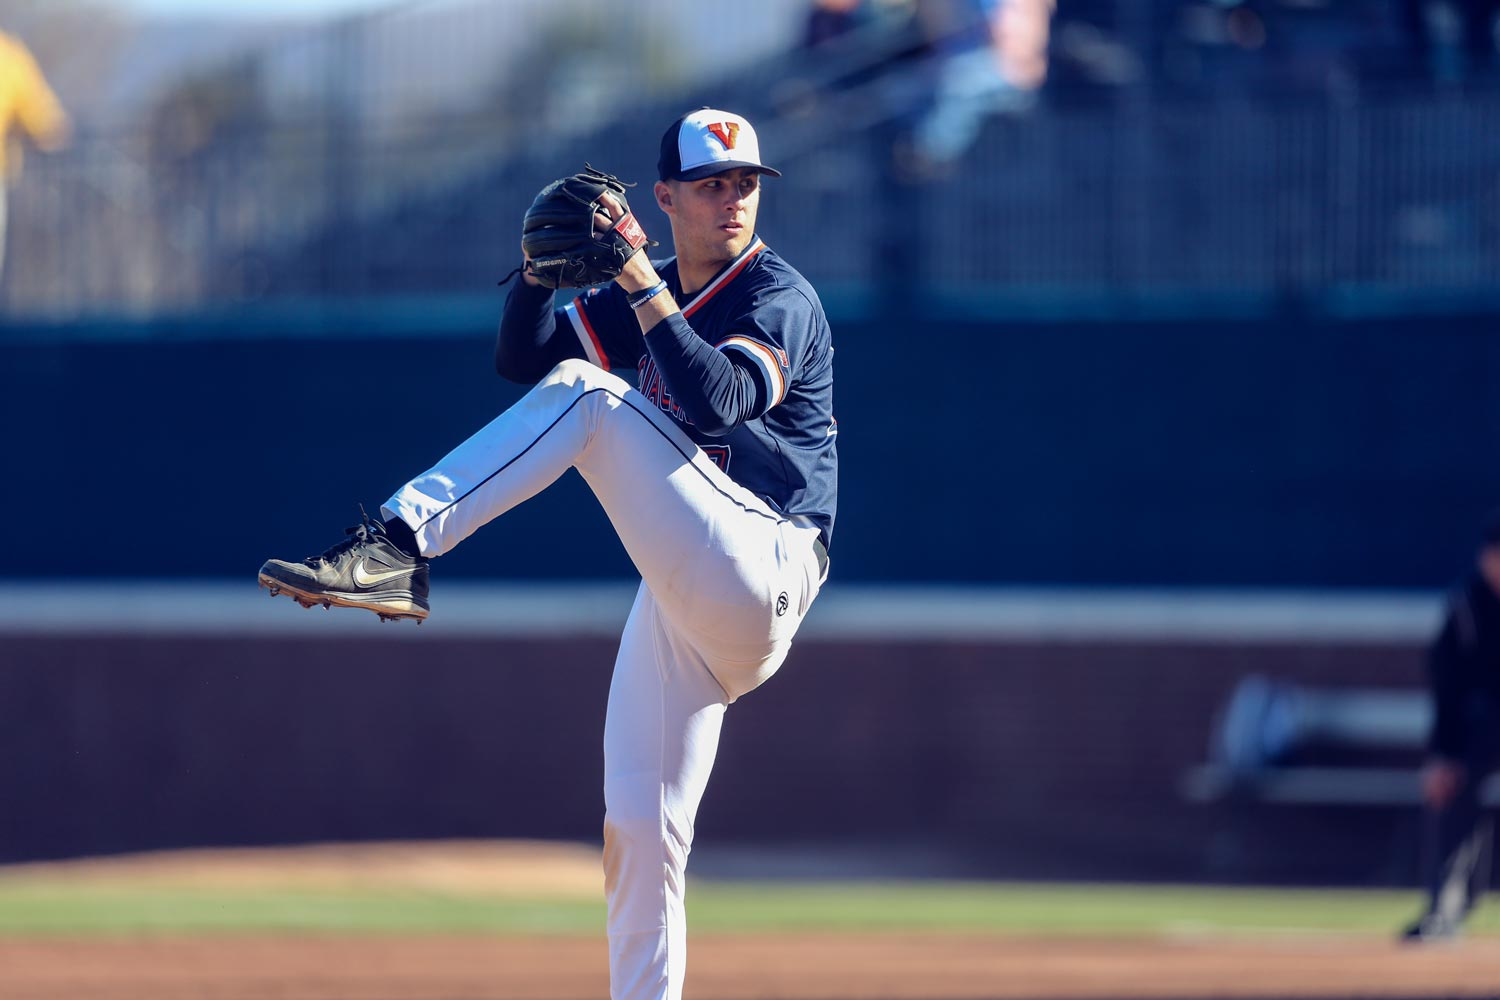 """""""I think student-athlete involvement outside of athletics is really important,"""" said Cavalier baseball player Chesdin Harrington, who has sought out experiences outside athletics during his time at UVA."""